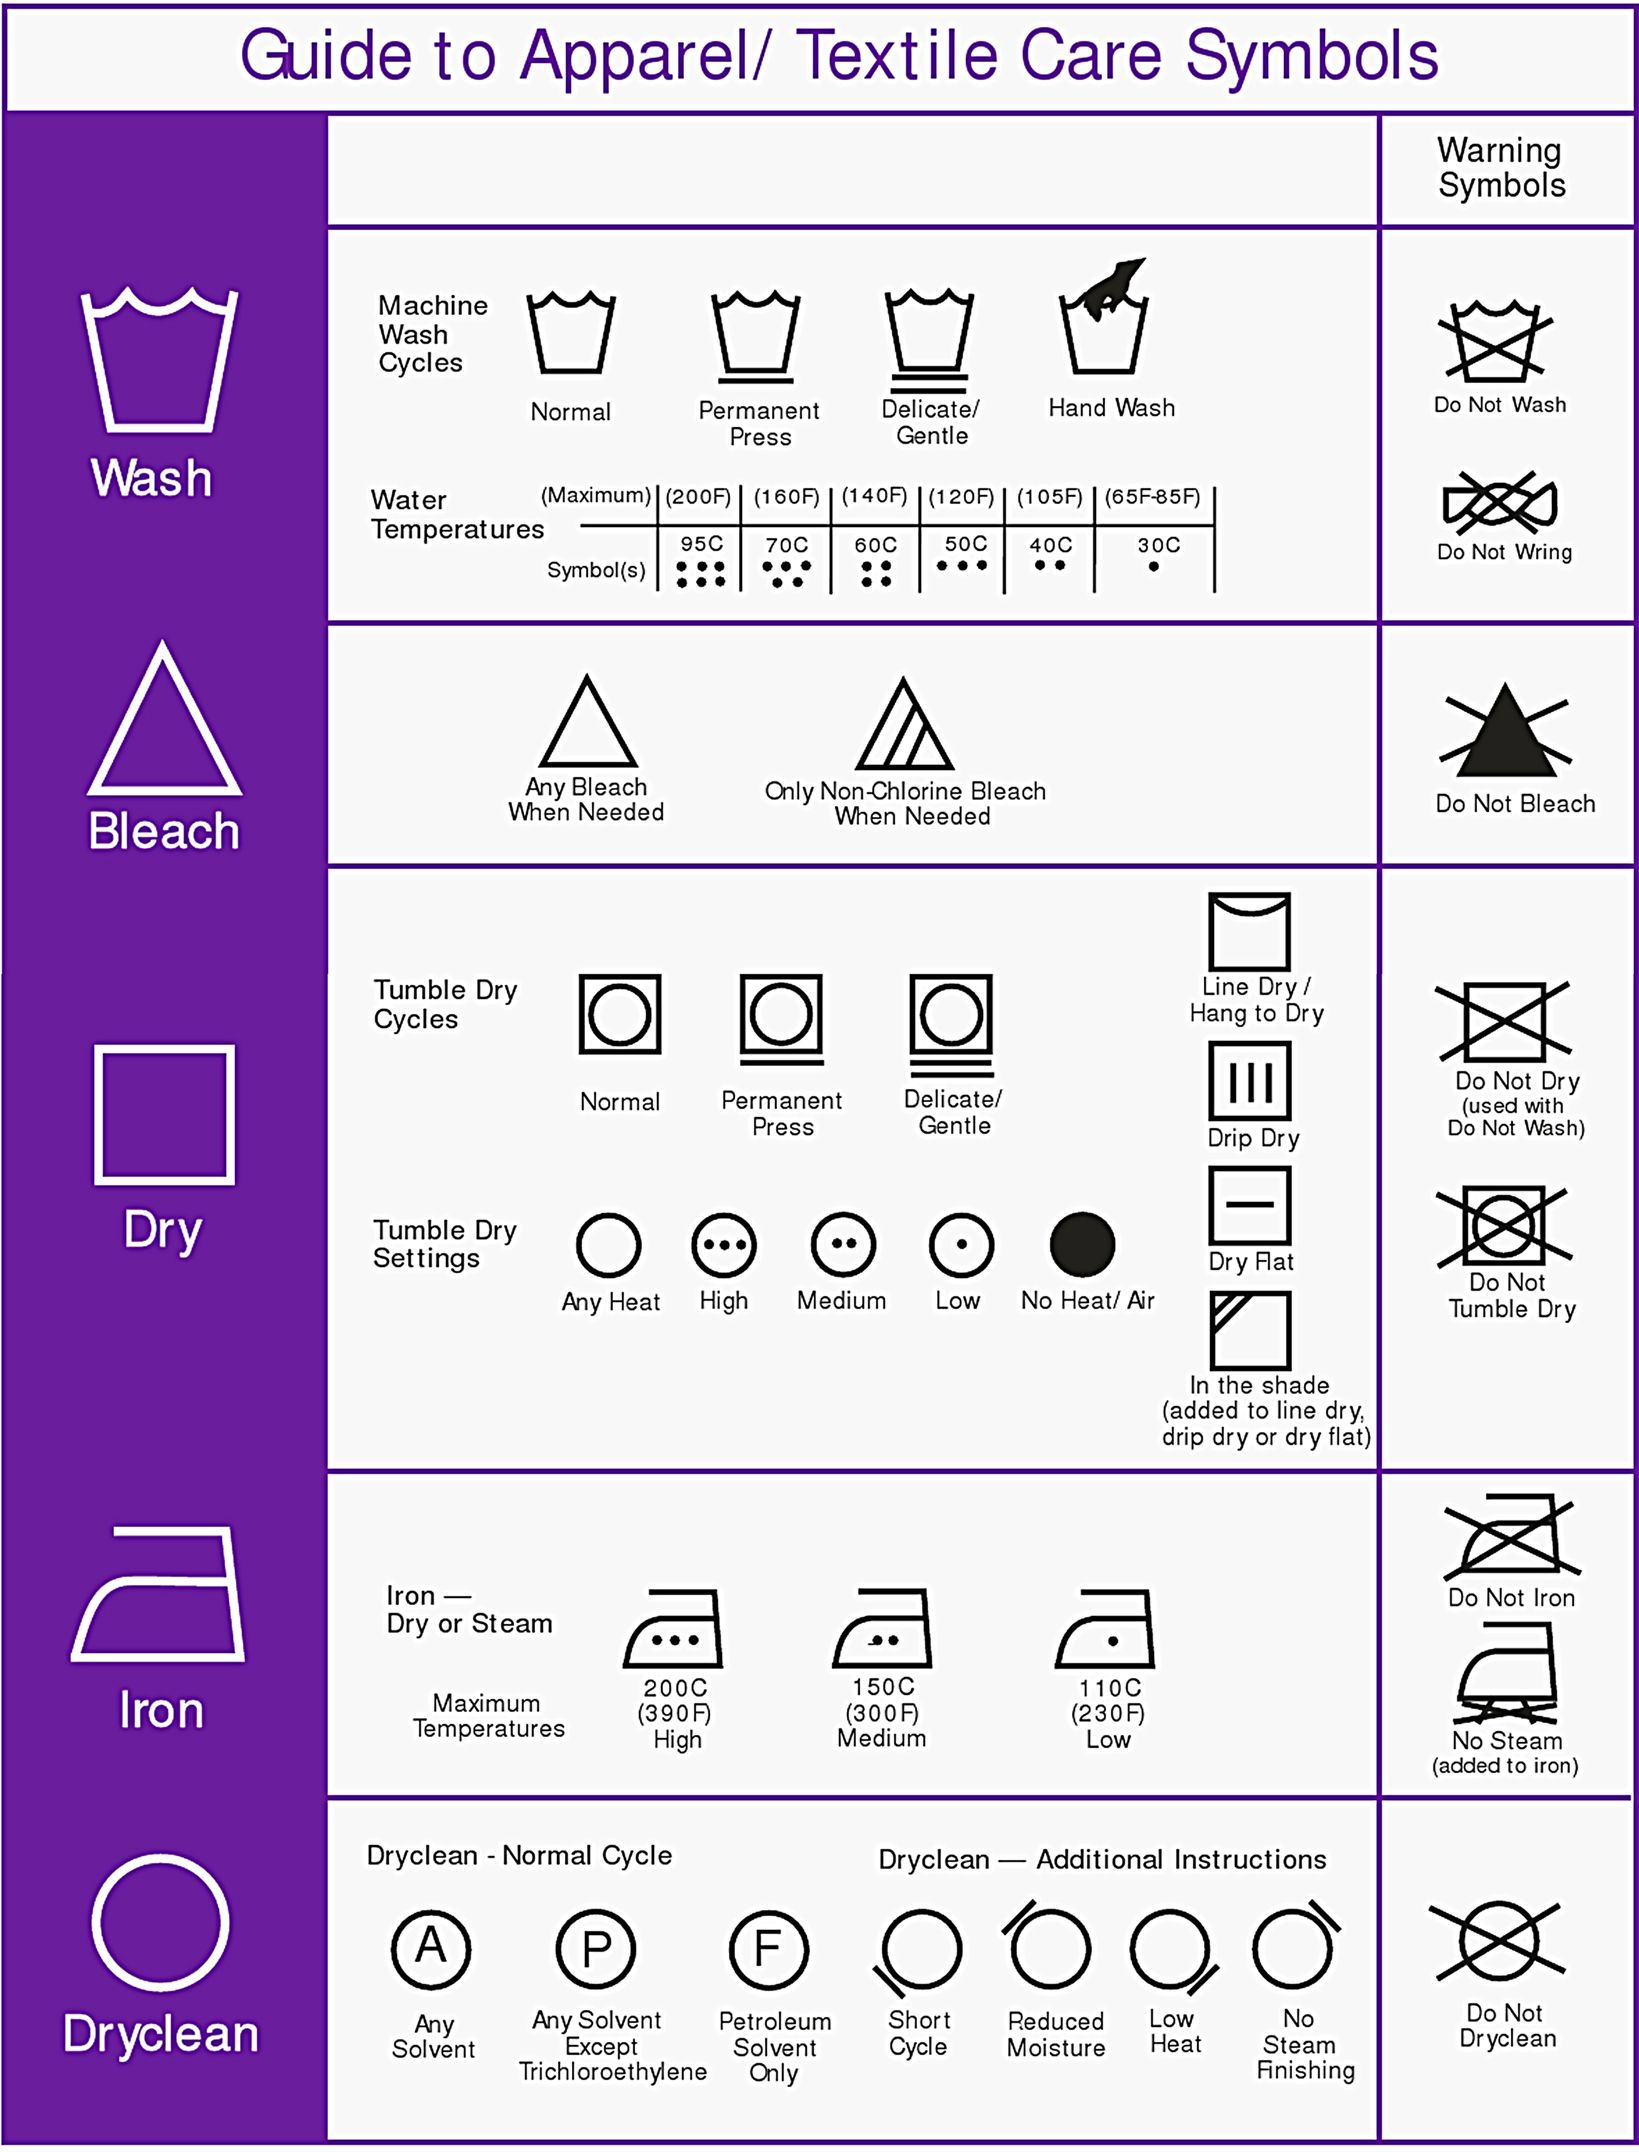 Cracking The Code : Learn The Laundry Care Symbols In 5